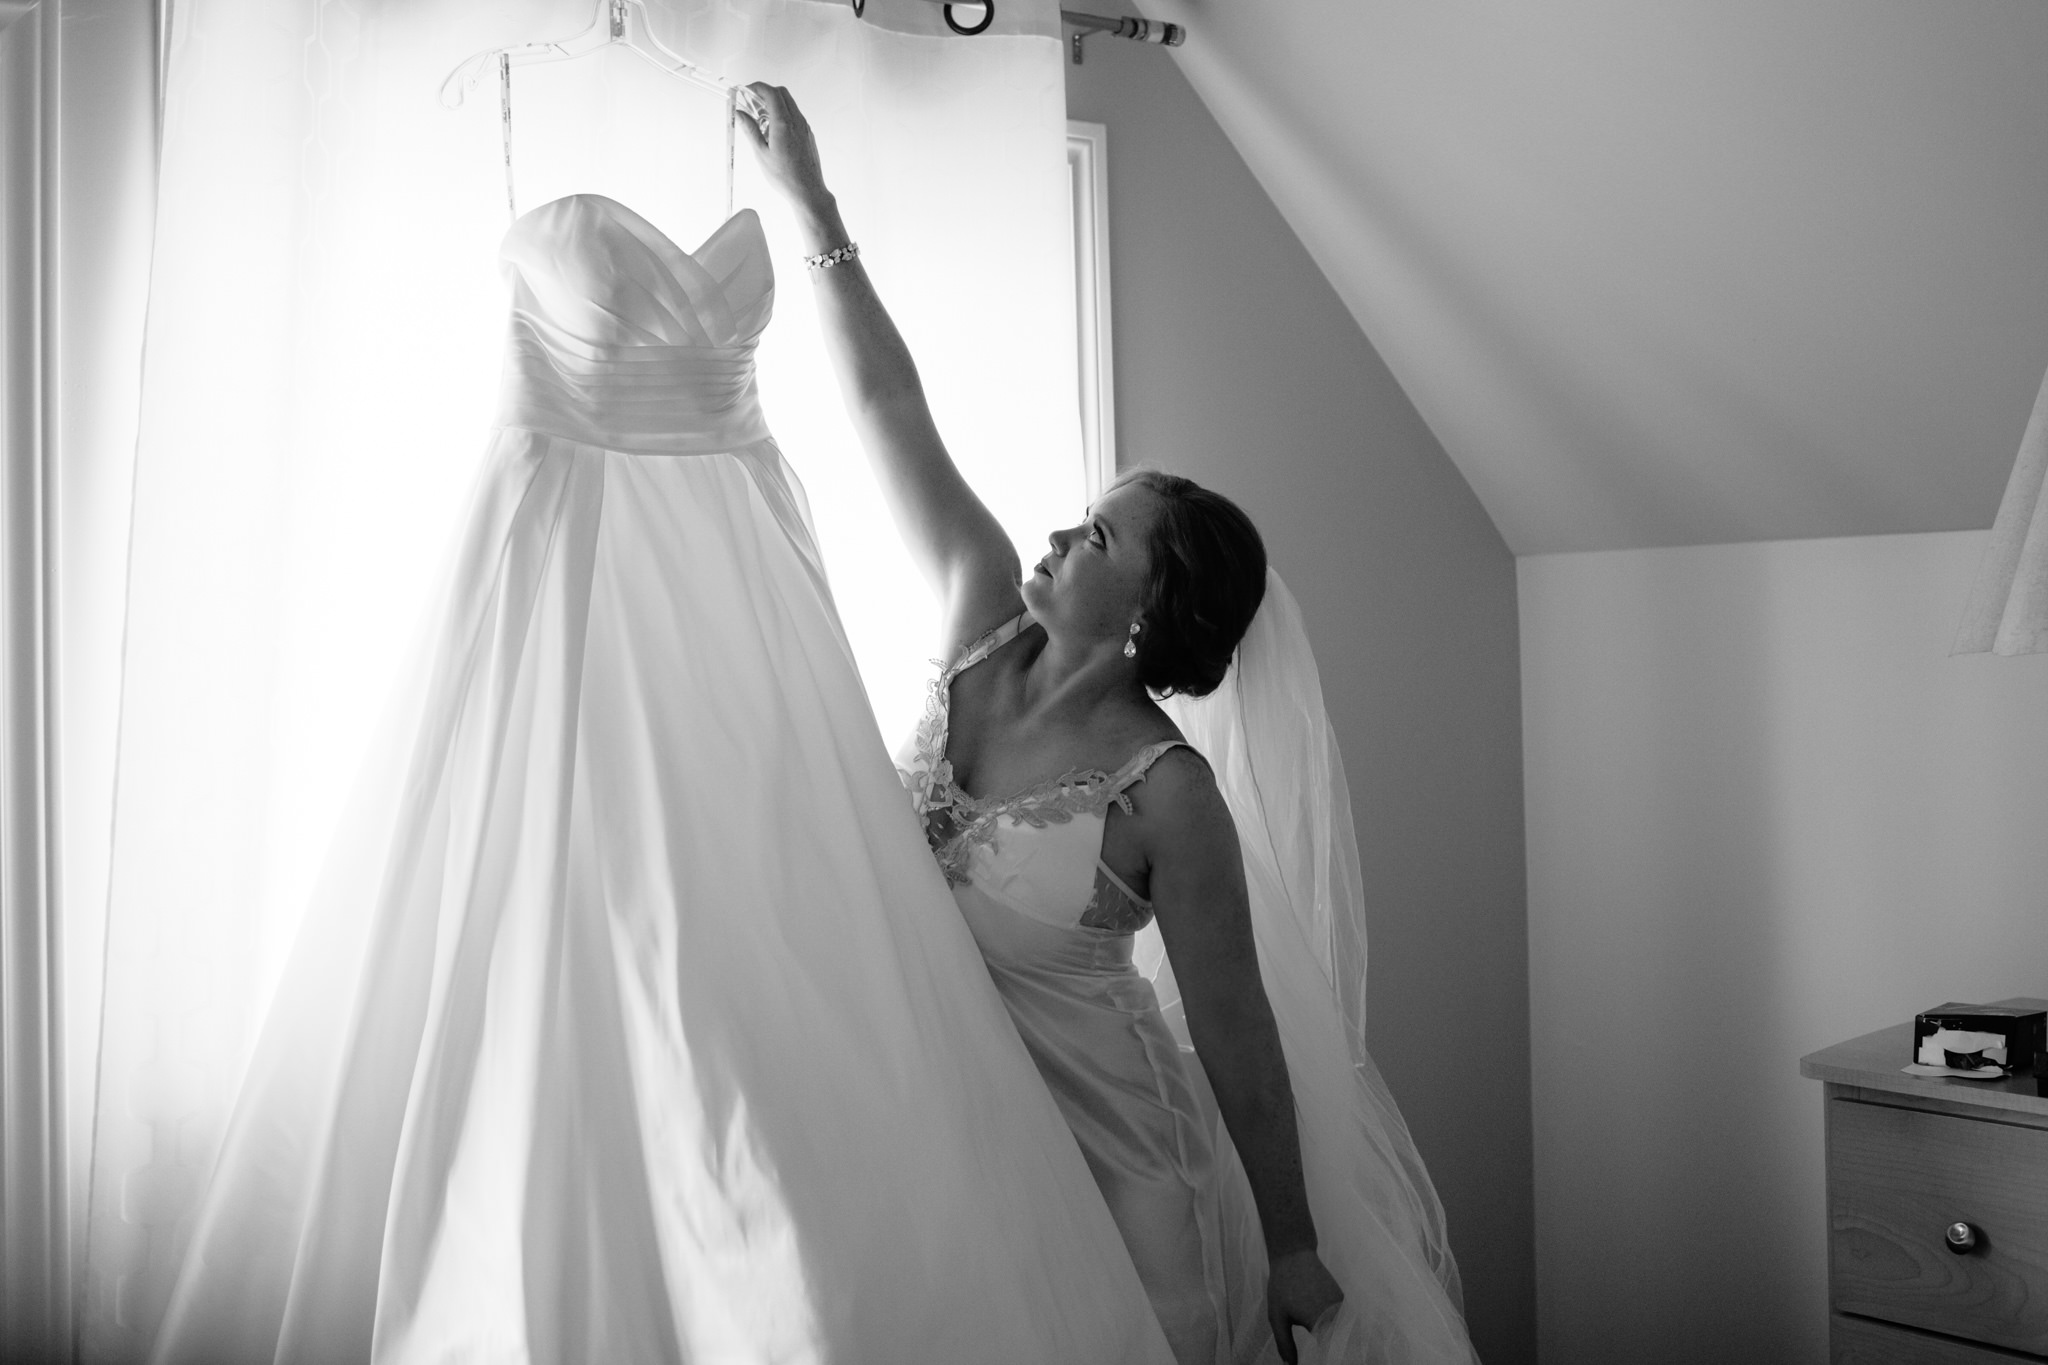 bride getting down wedding dress to put on